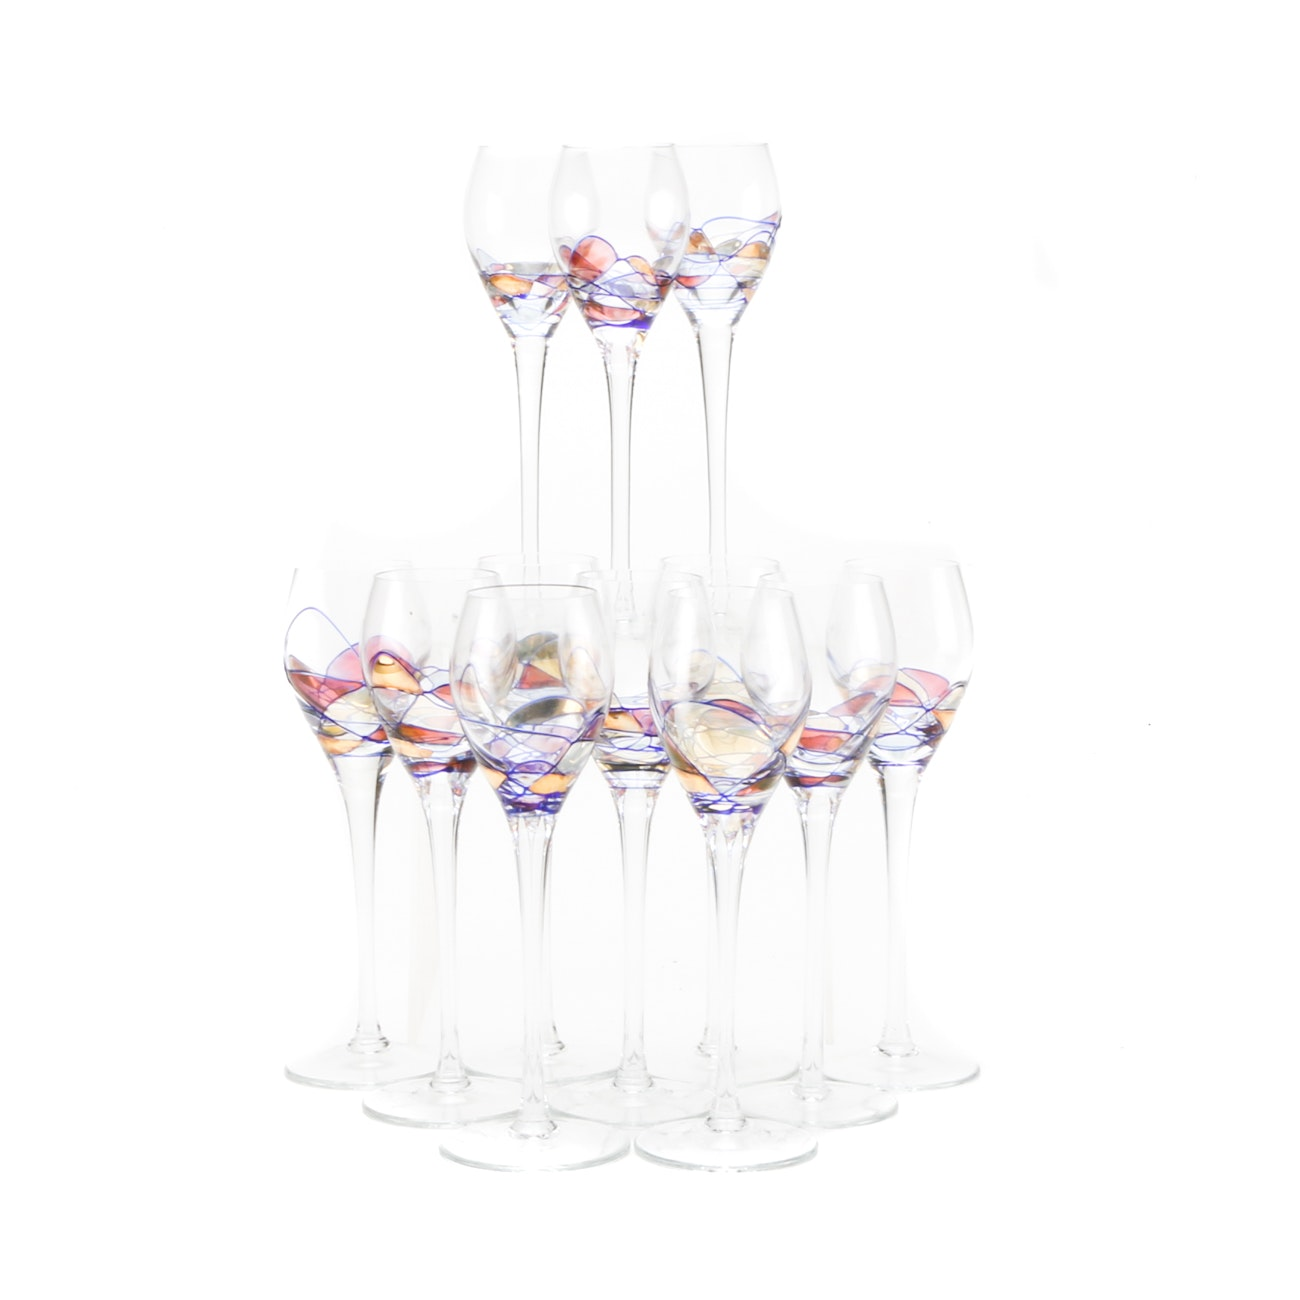 Set of Hand-Painted Cordial Glasses